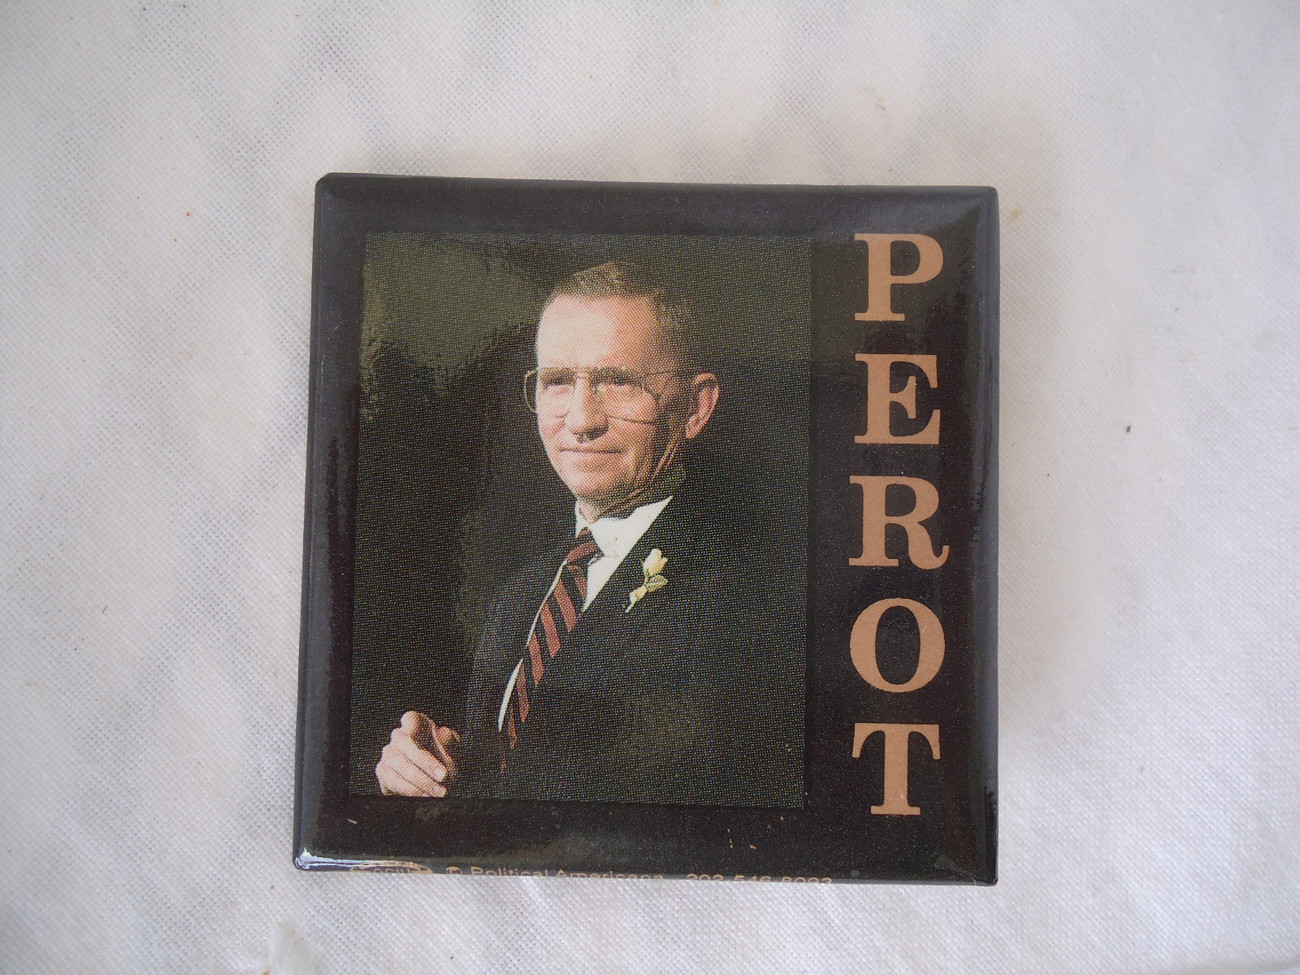 Primary image for  Perot Political Americana Pinback